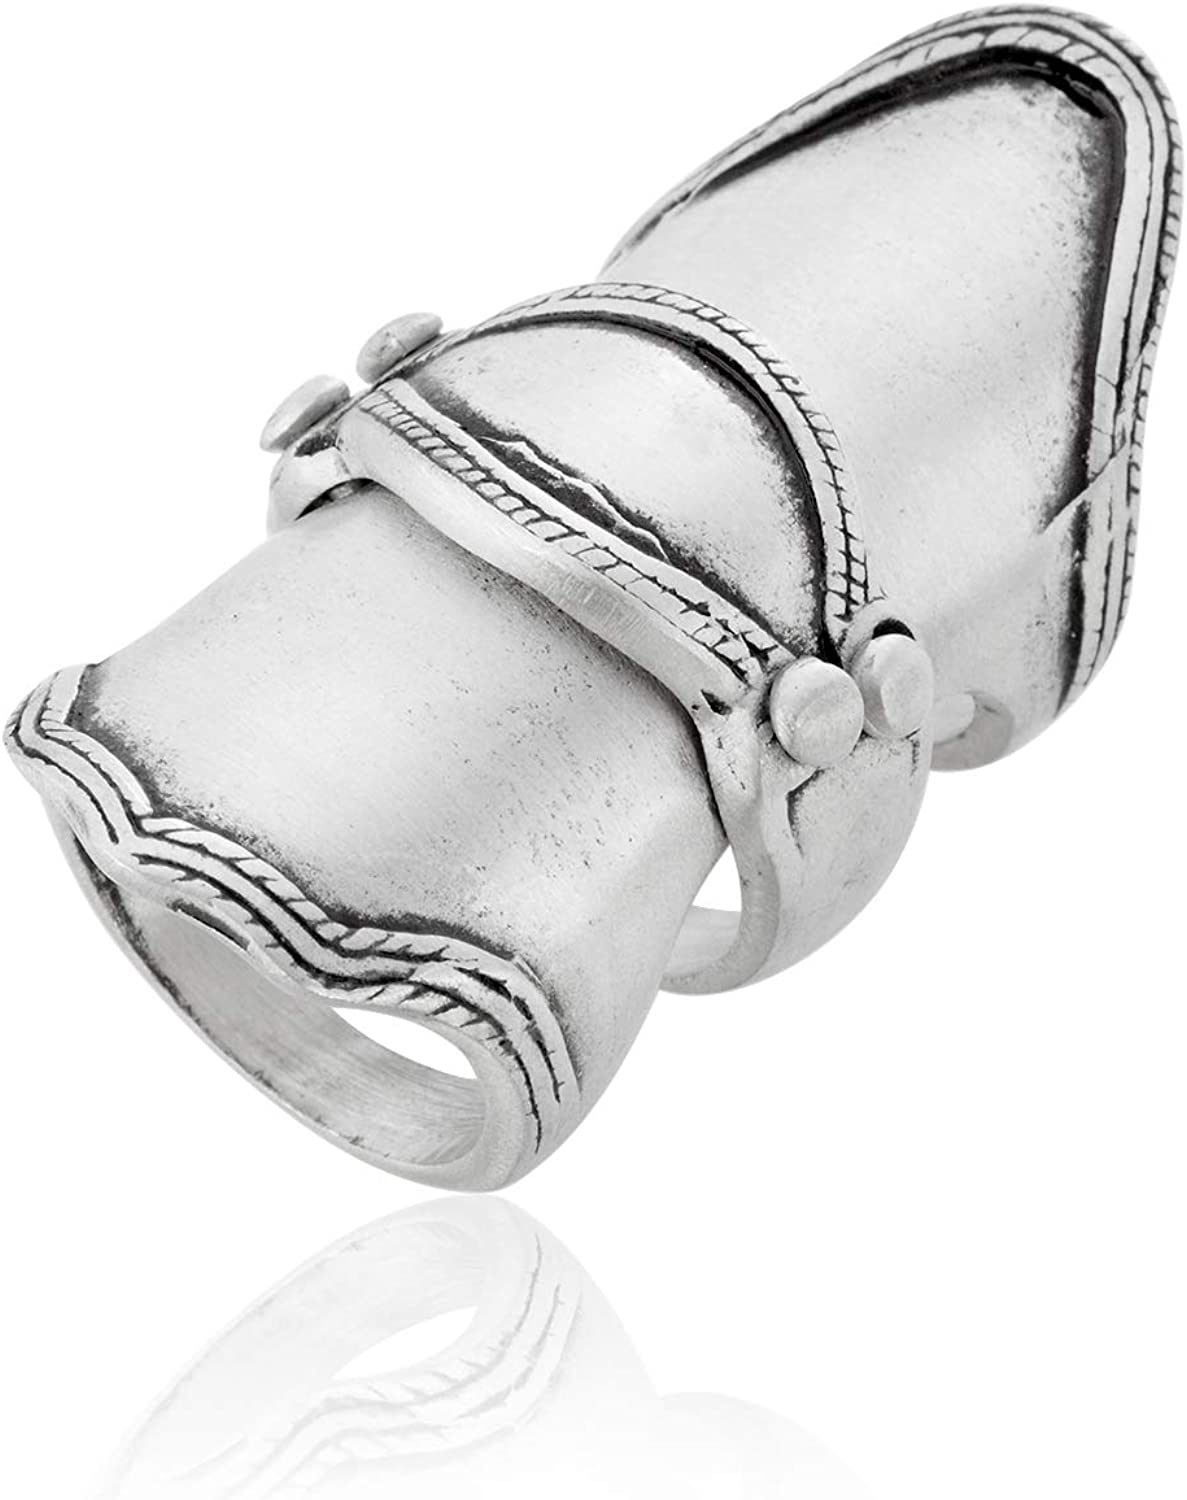 Namaste Jewelers Punk Knuckle Hinged Armor Ring Pewter Jewelry